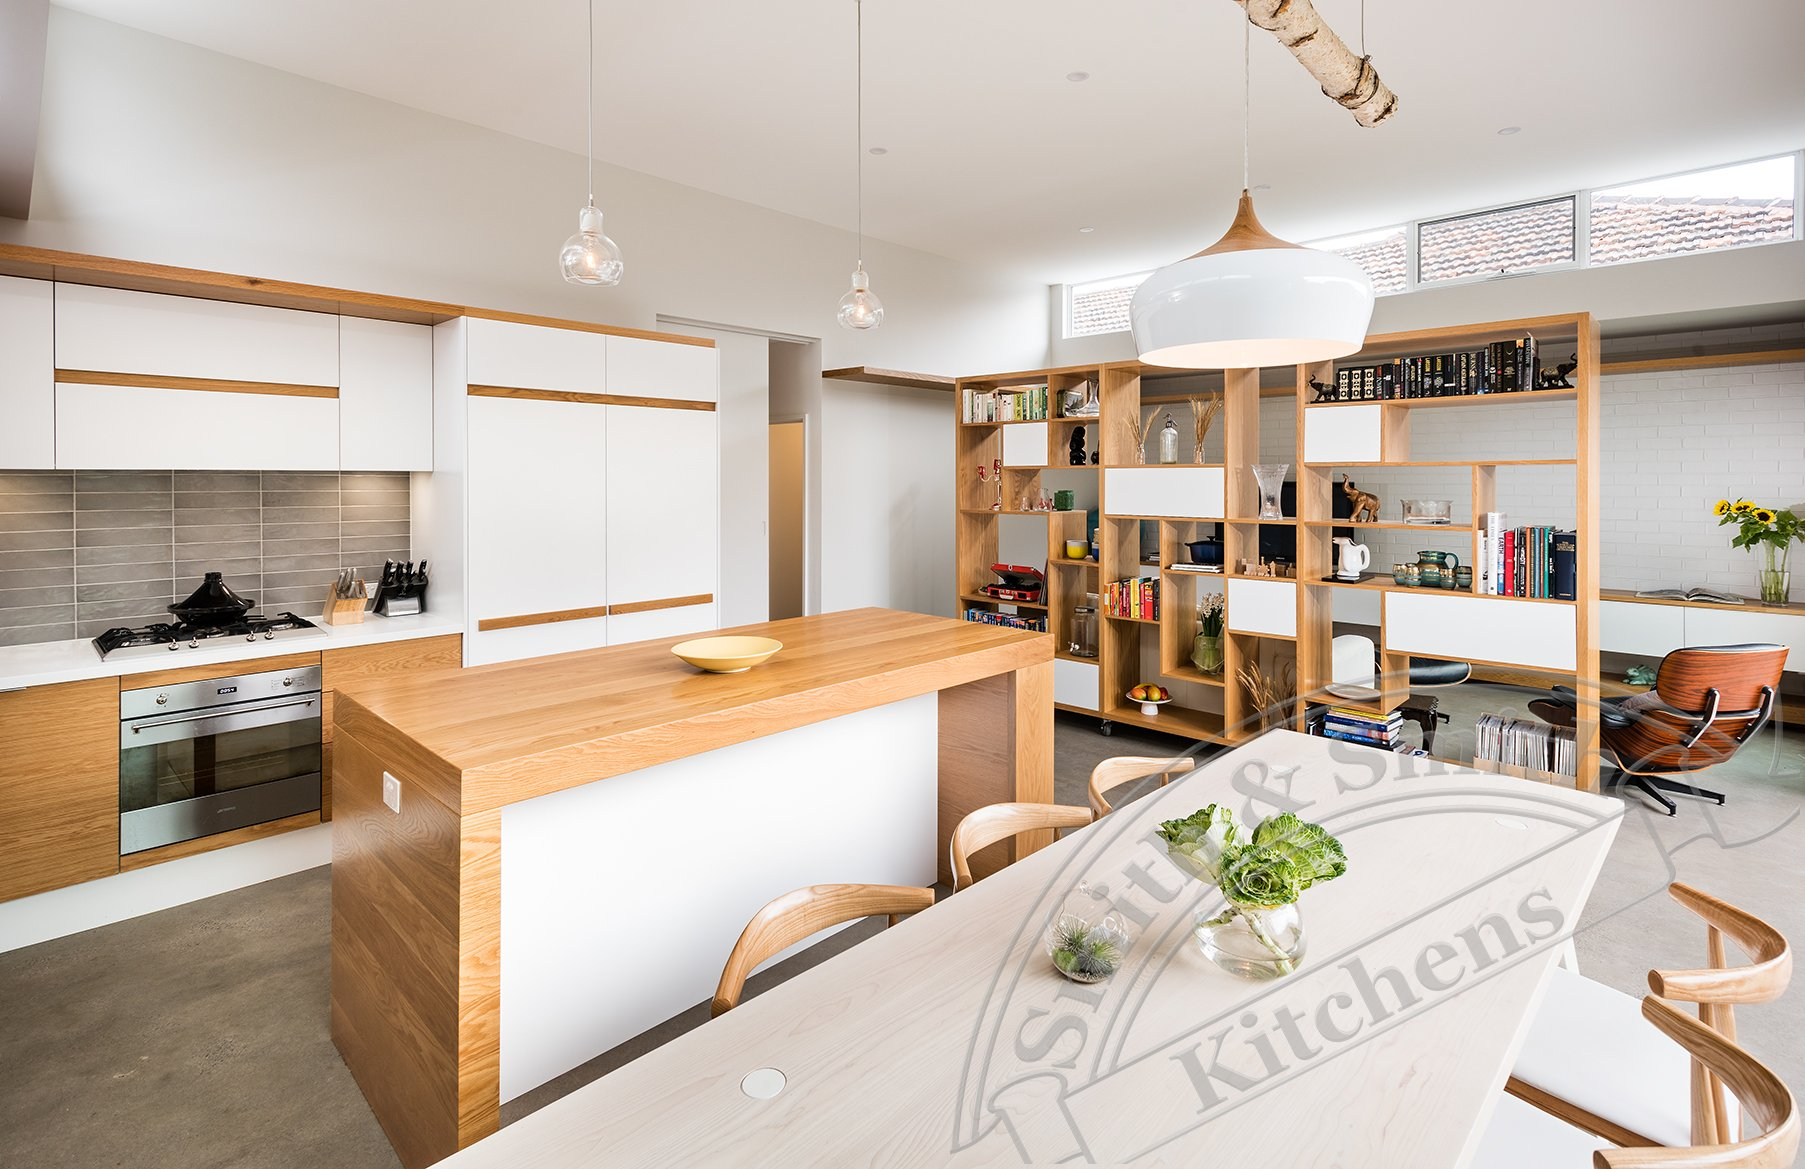 Kitchen design melbourne things to consider before design for Kitchen design melbourne